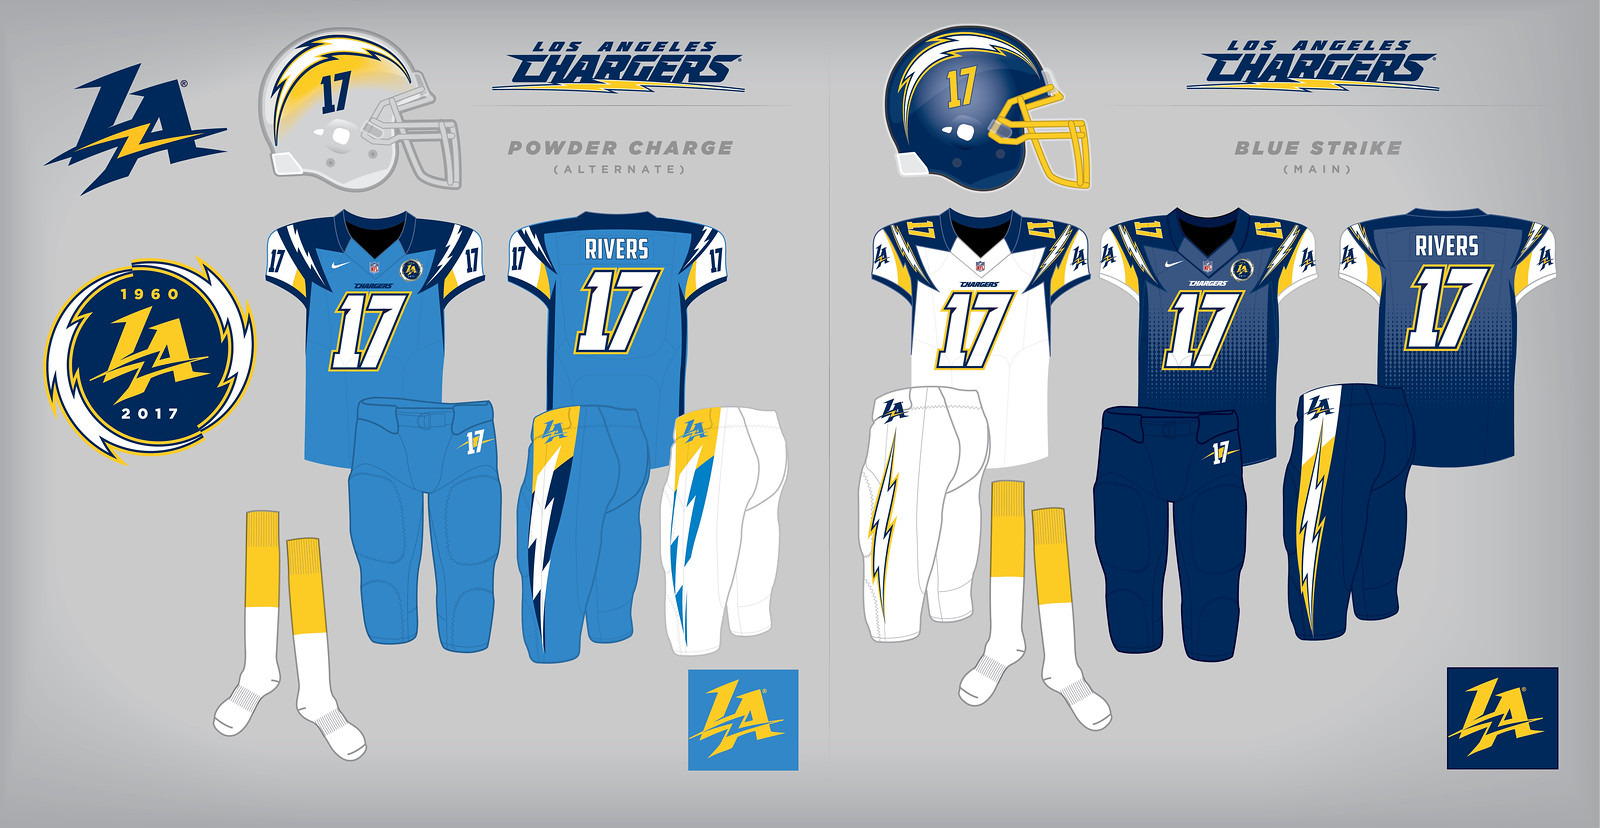 9a475350b Uni Watch delivers the winning entries in the Chargers redesign contest